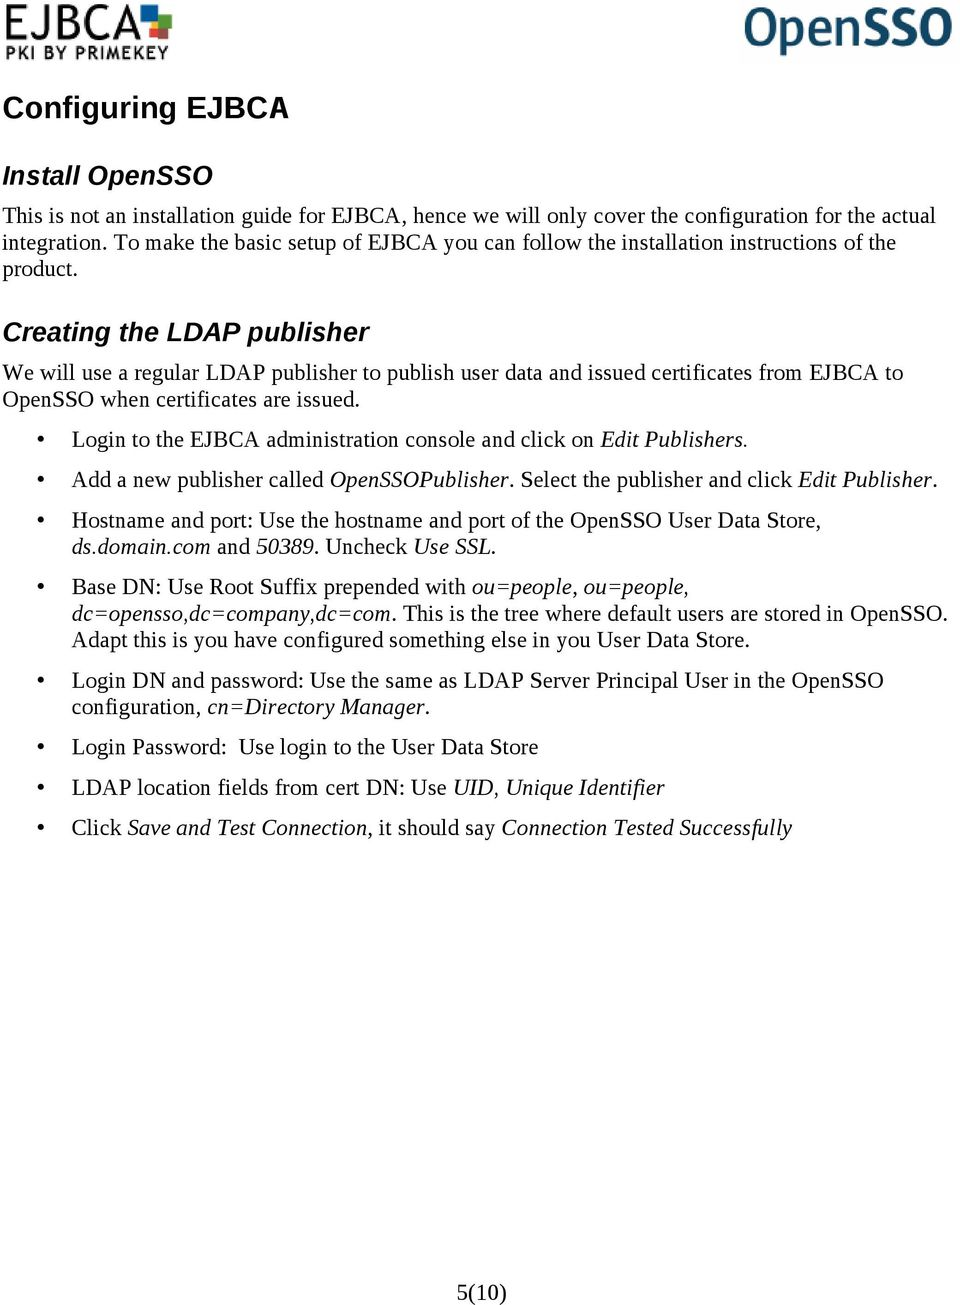 Creating the LDAP publisher We will use a regular LDAP publisher to publish user data and issued certificates from EJBCA to OpenSSO when certificates are issued.